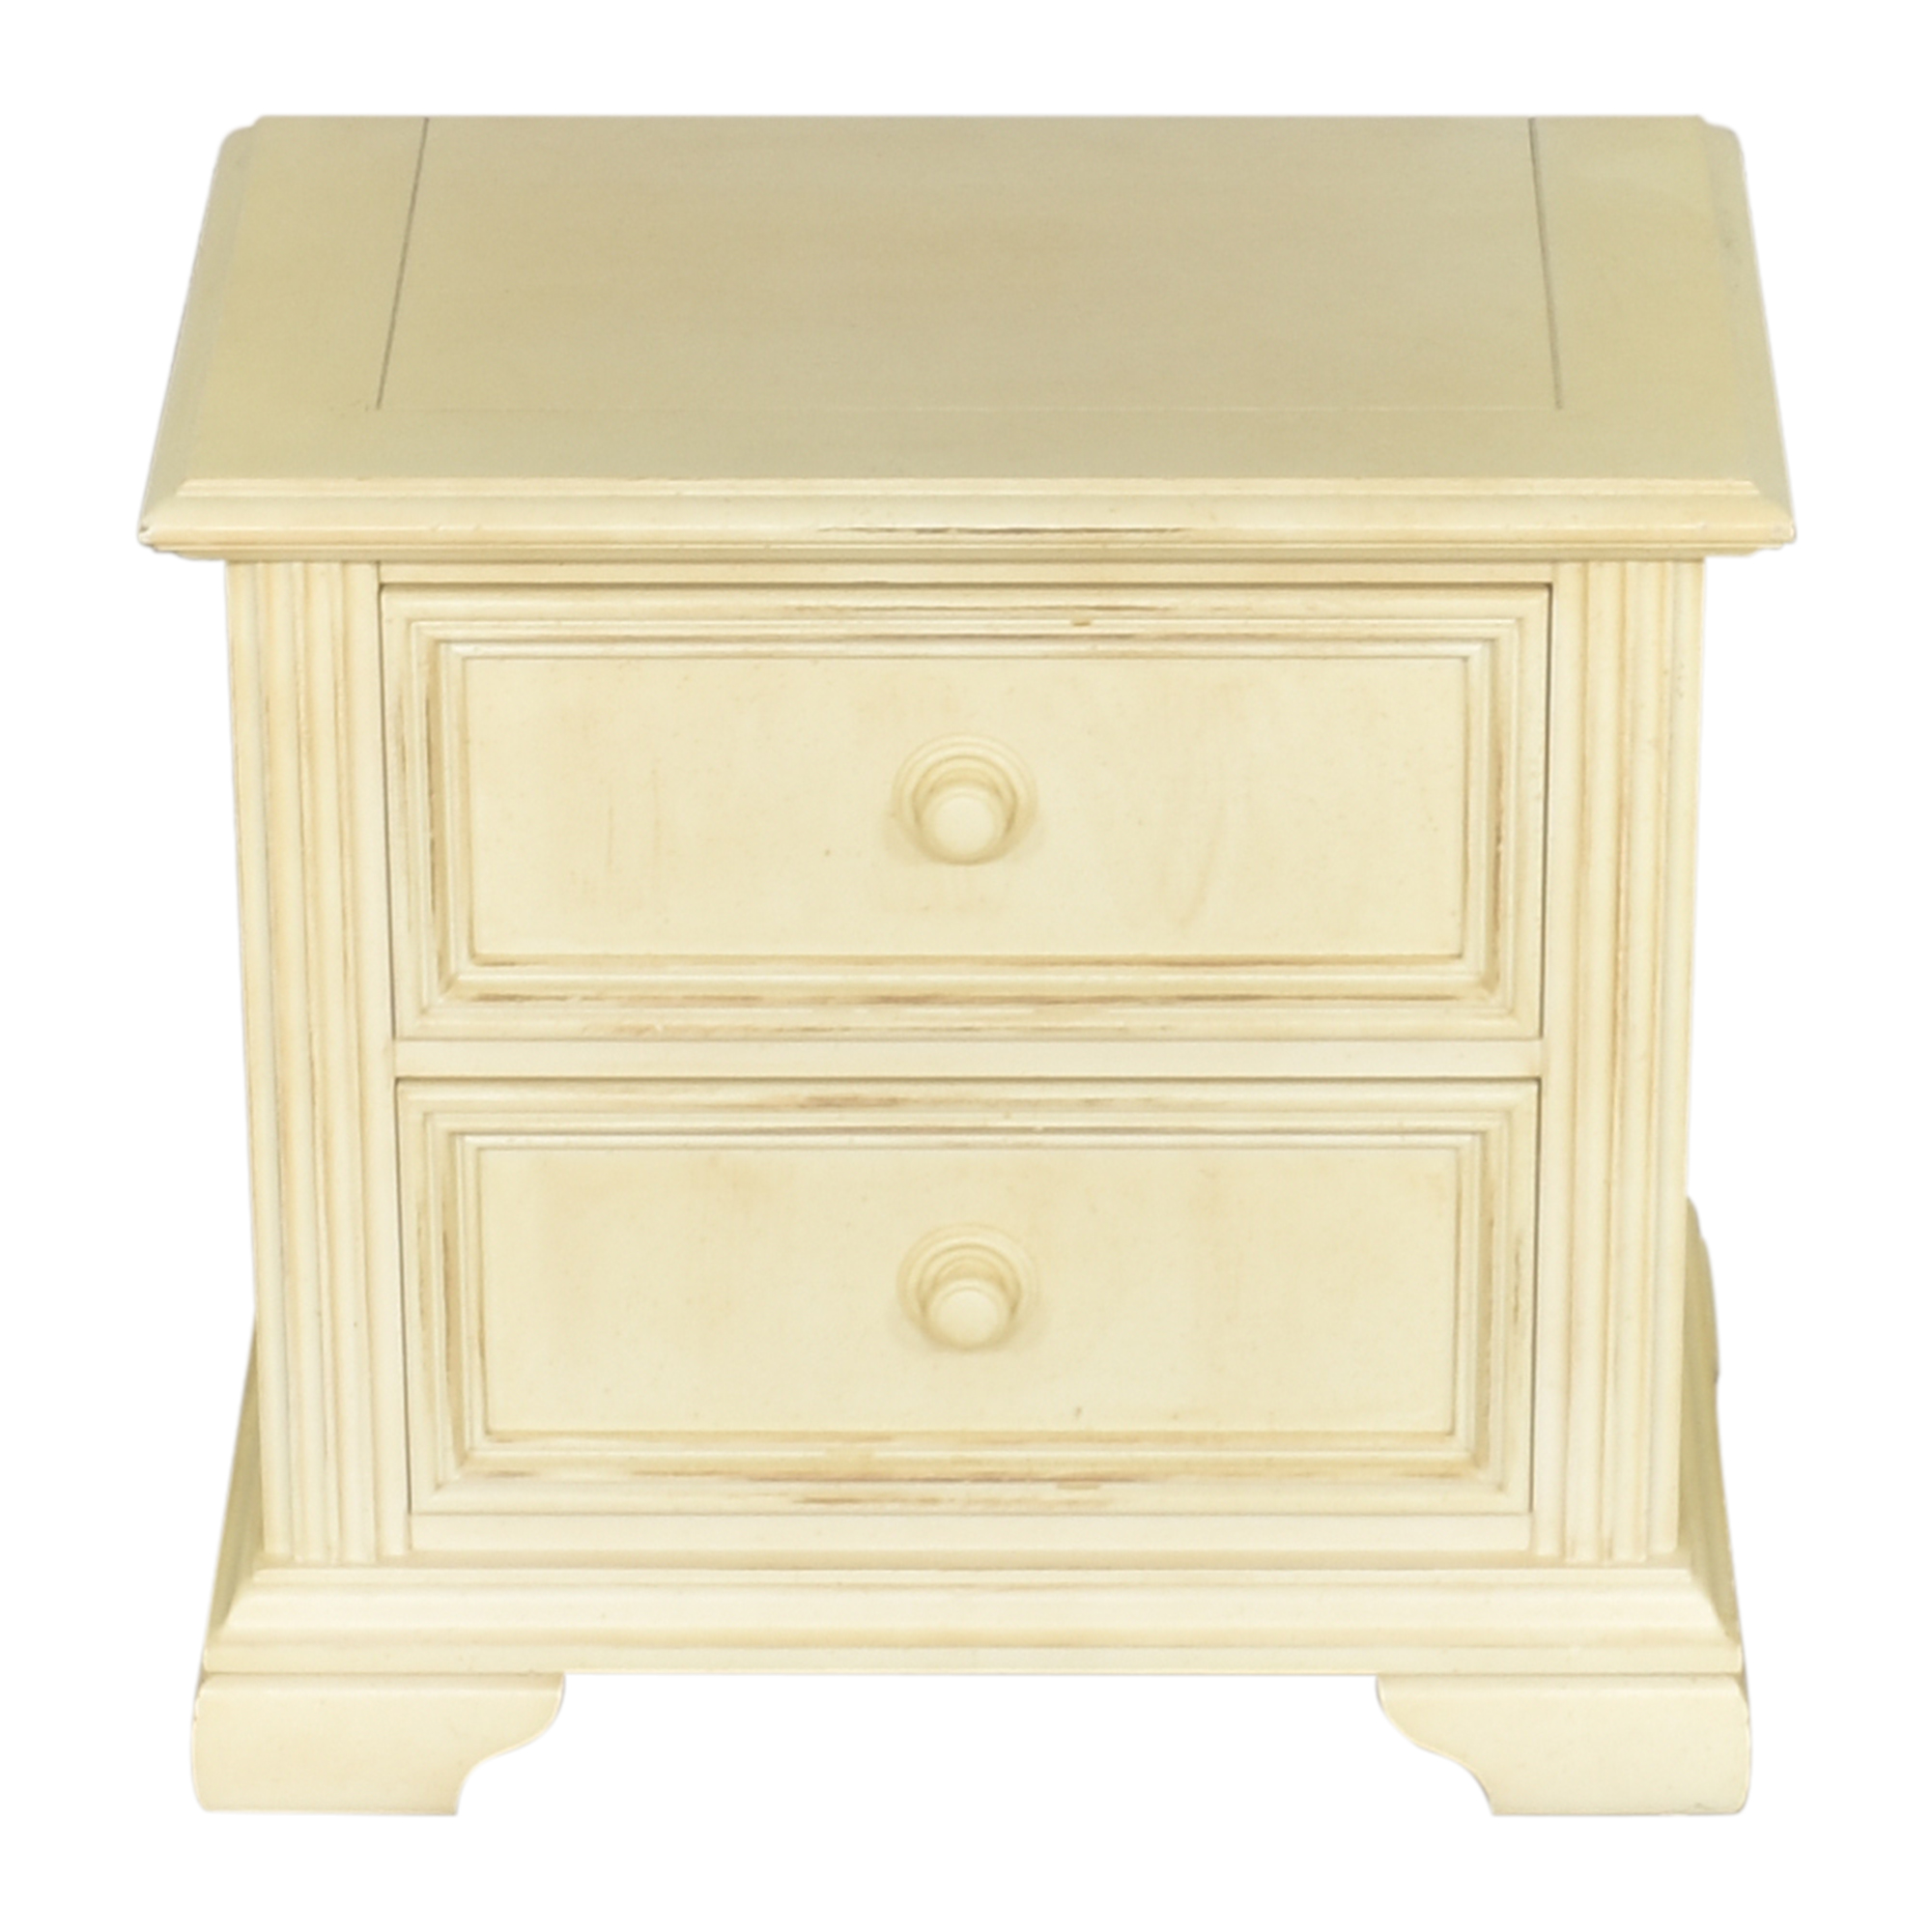 Stanley Furniture Stanley Furniture Distressed Two Drawer Nightstand nj